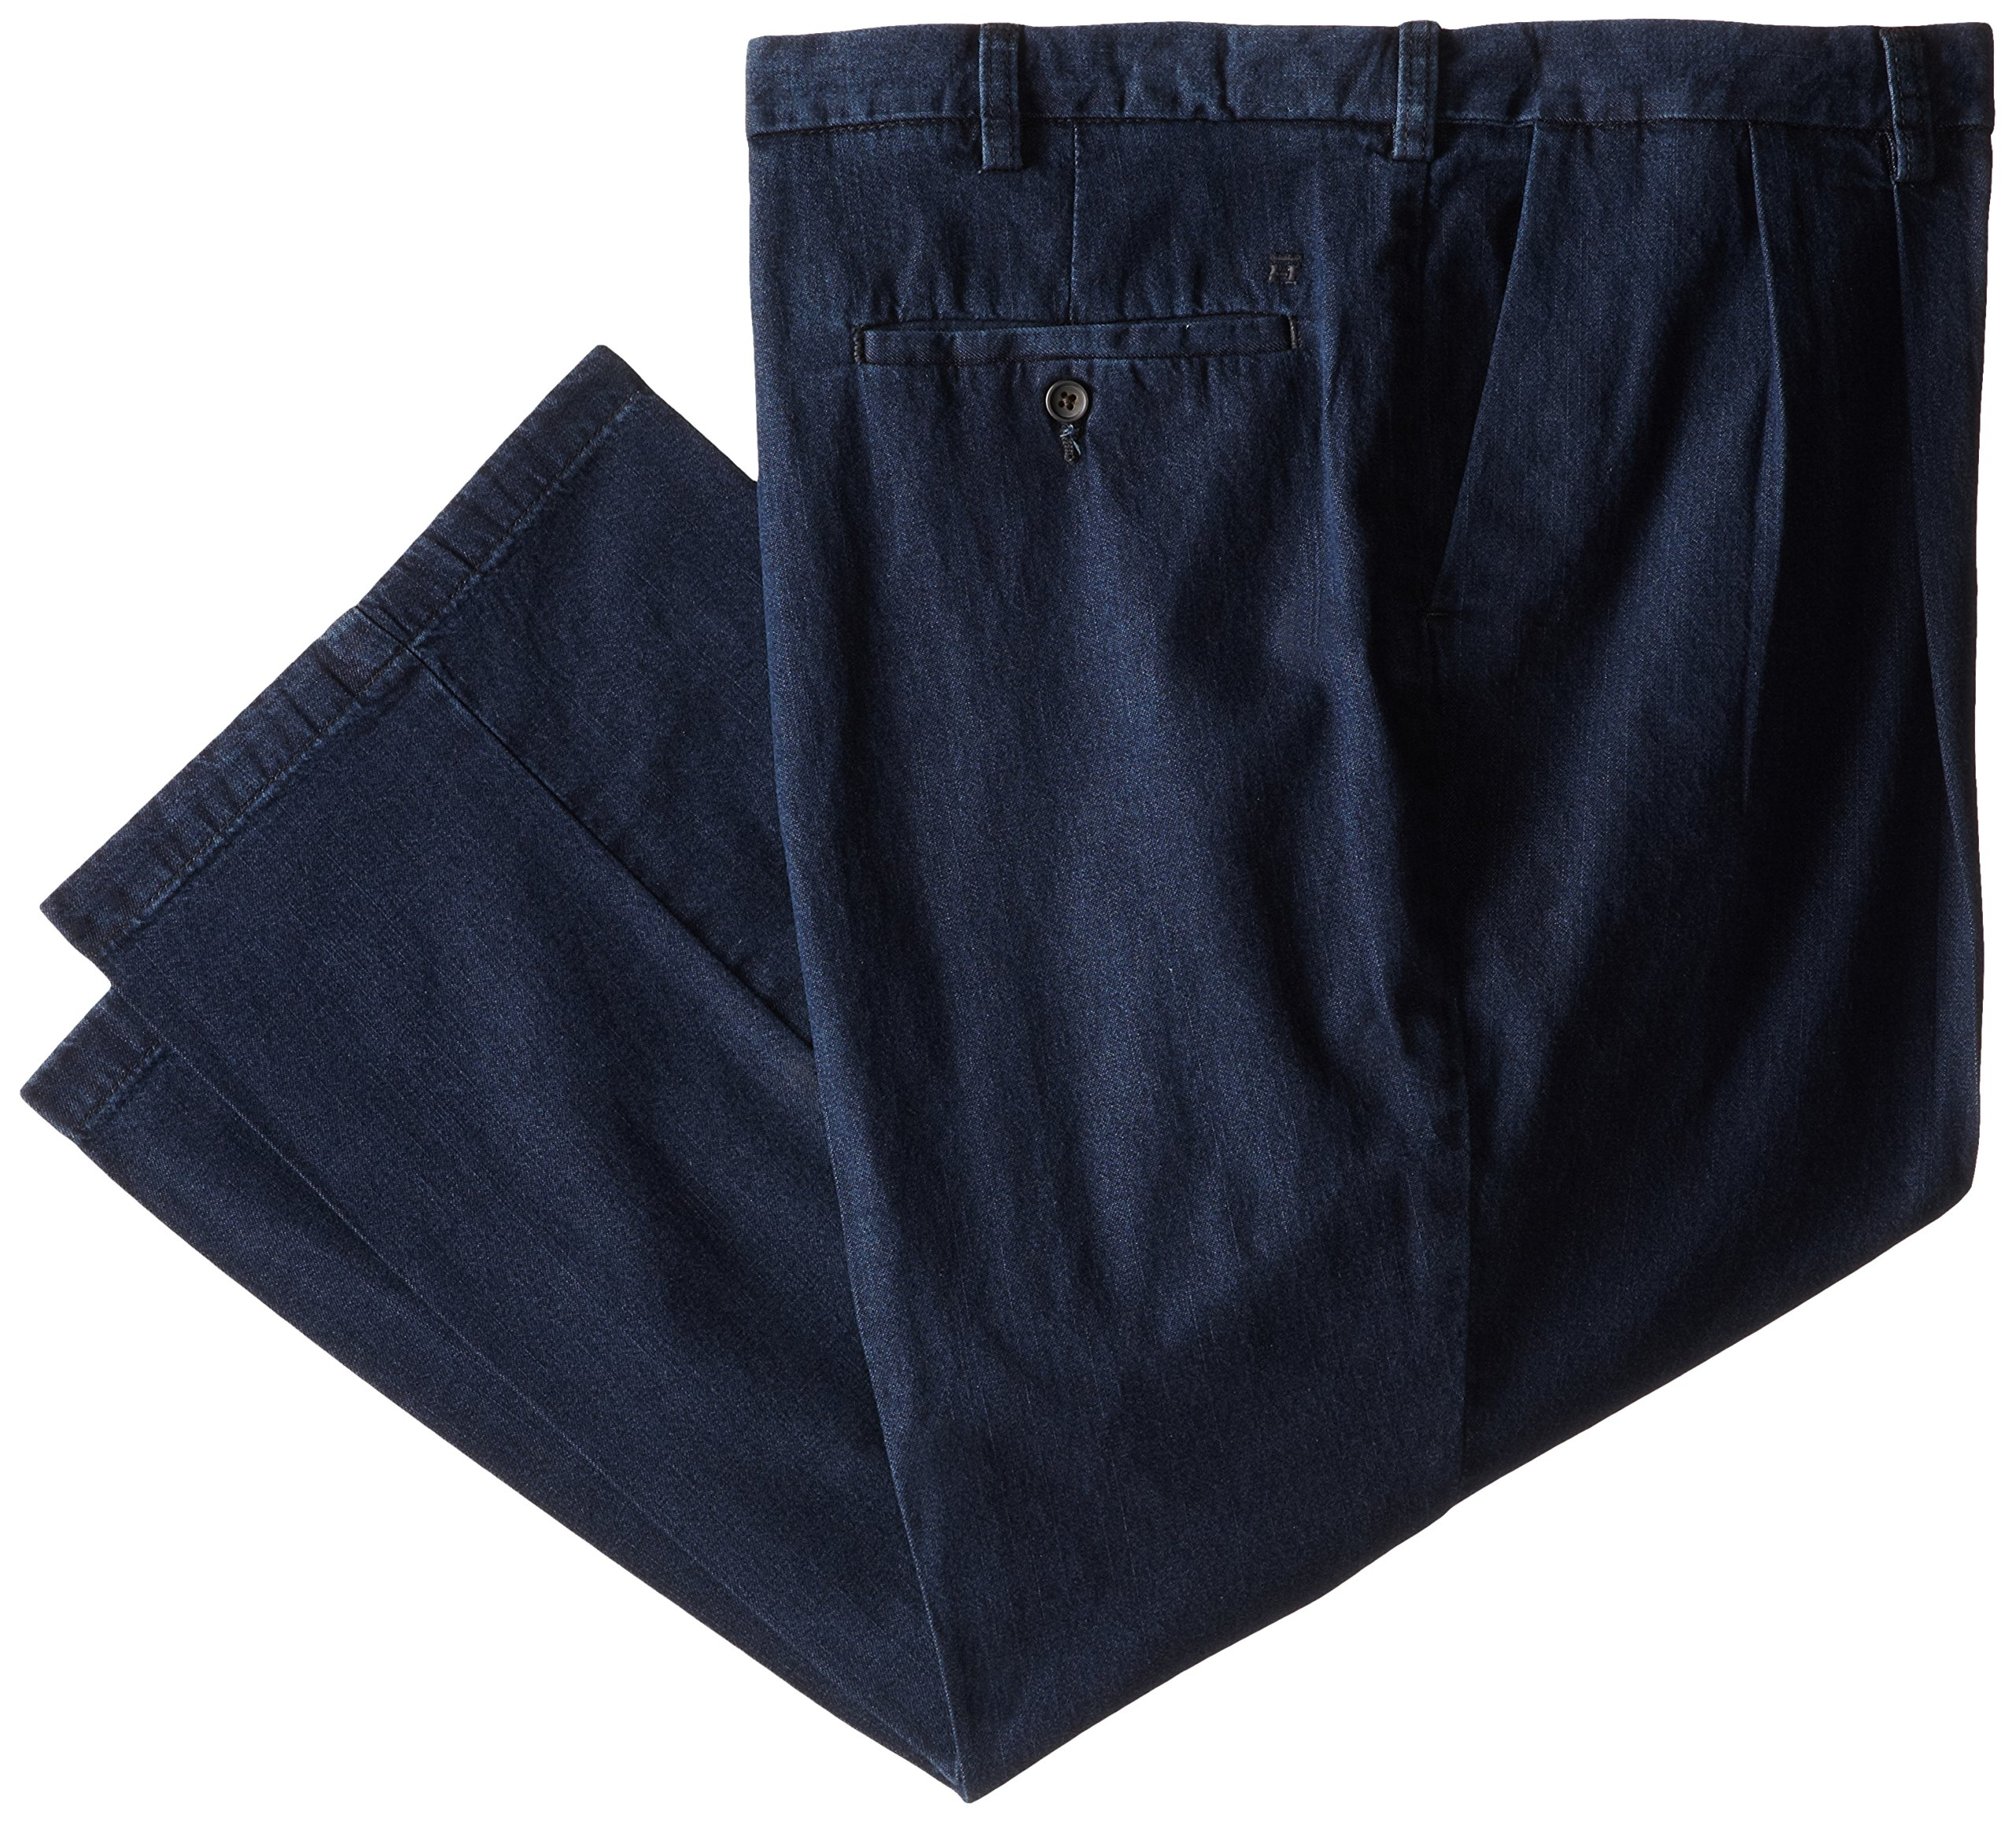 Haggar Men's Big-Tall Work To Weekend Expandable Waist Dark Denim Pant, Navy, 50x30